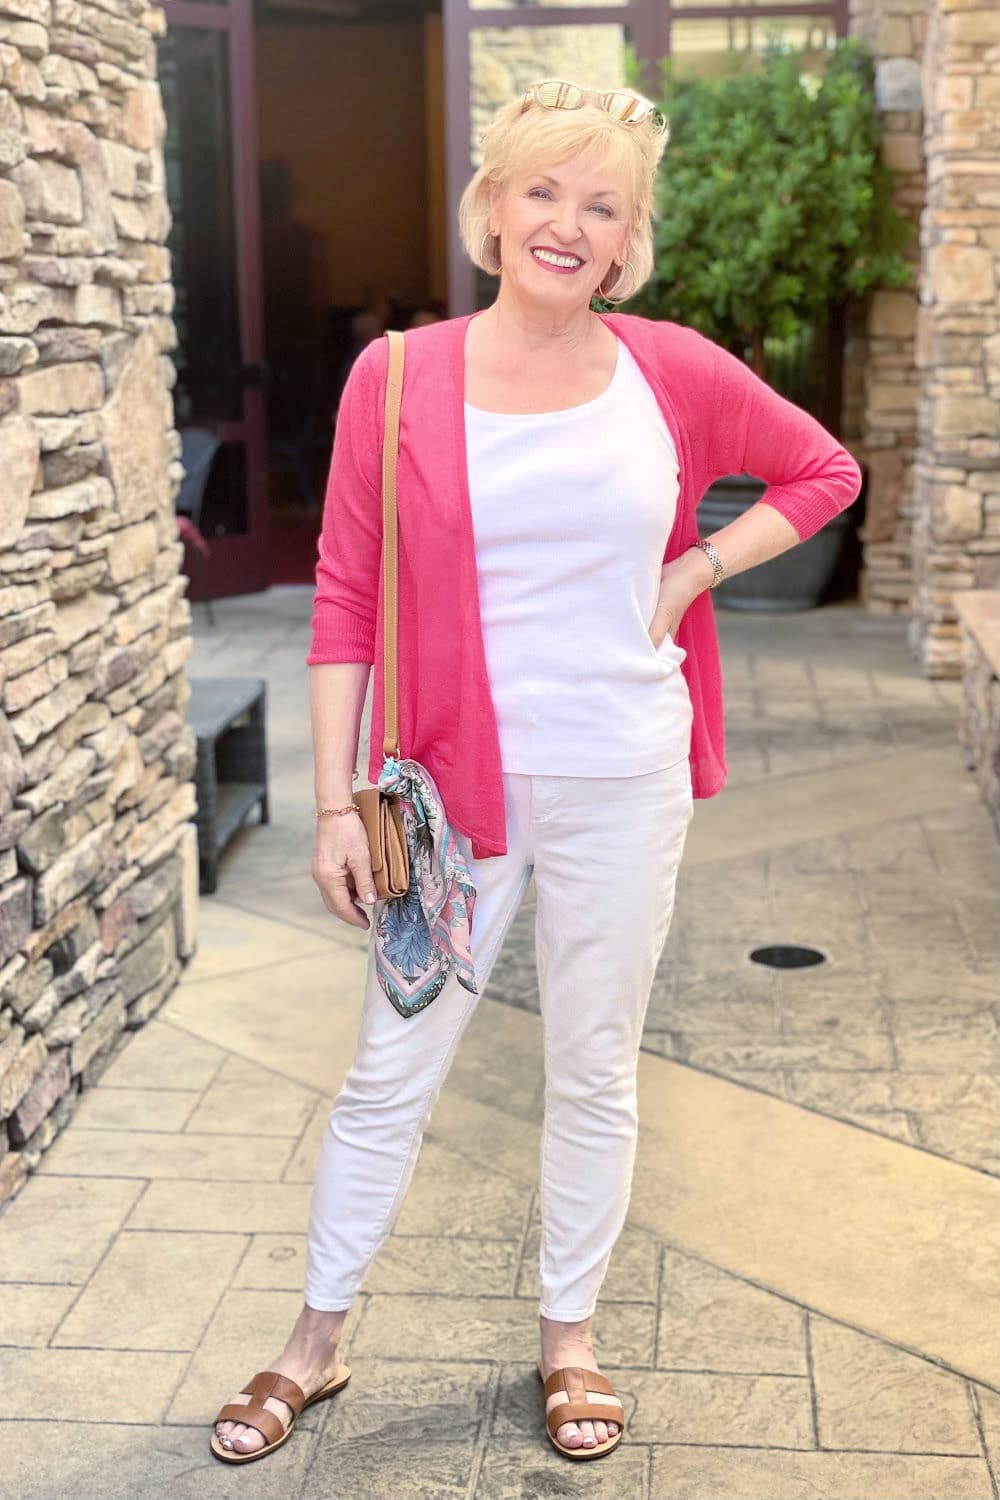 blonde woman wearing colorful cardigan now in warm weather